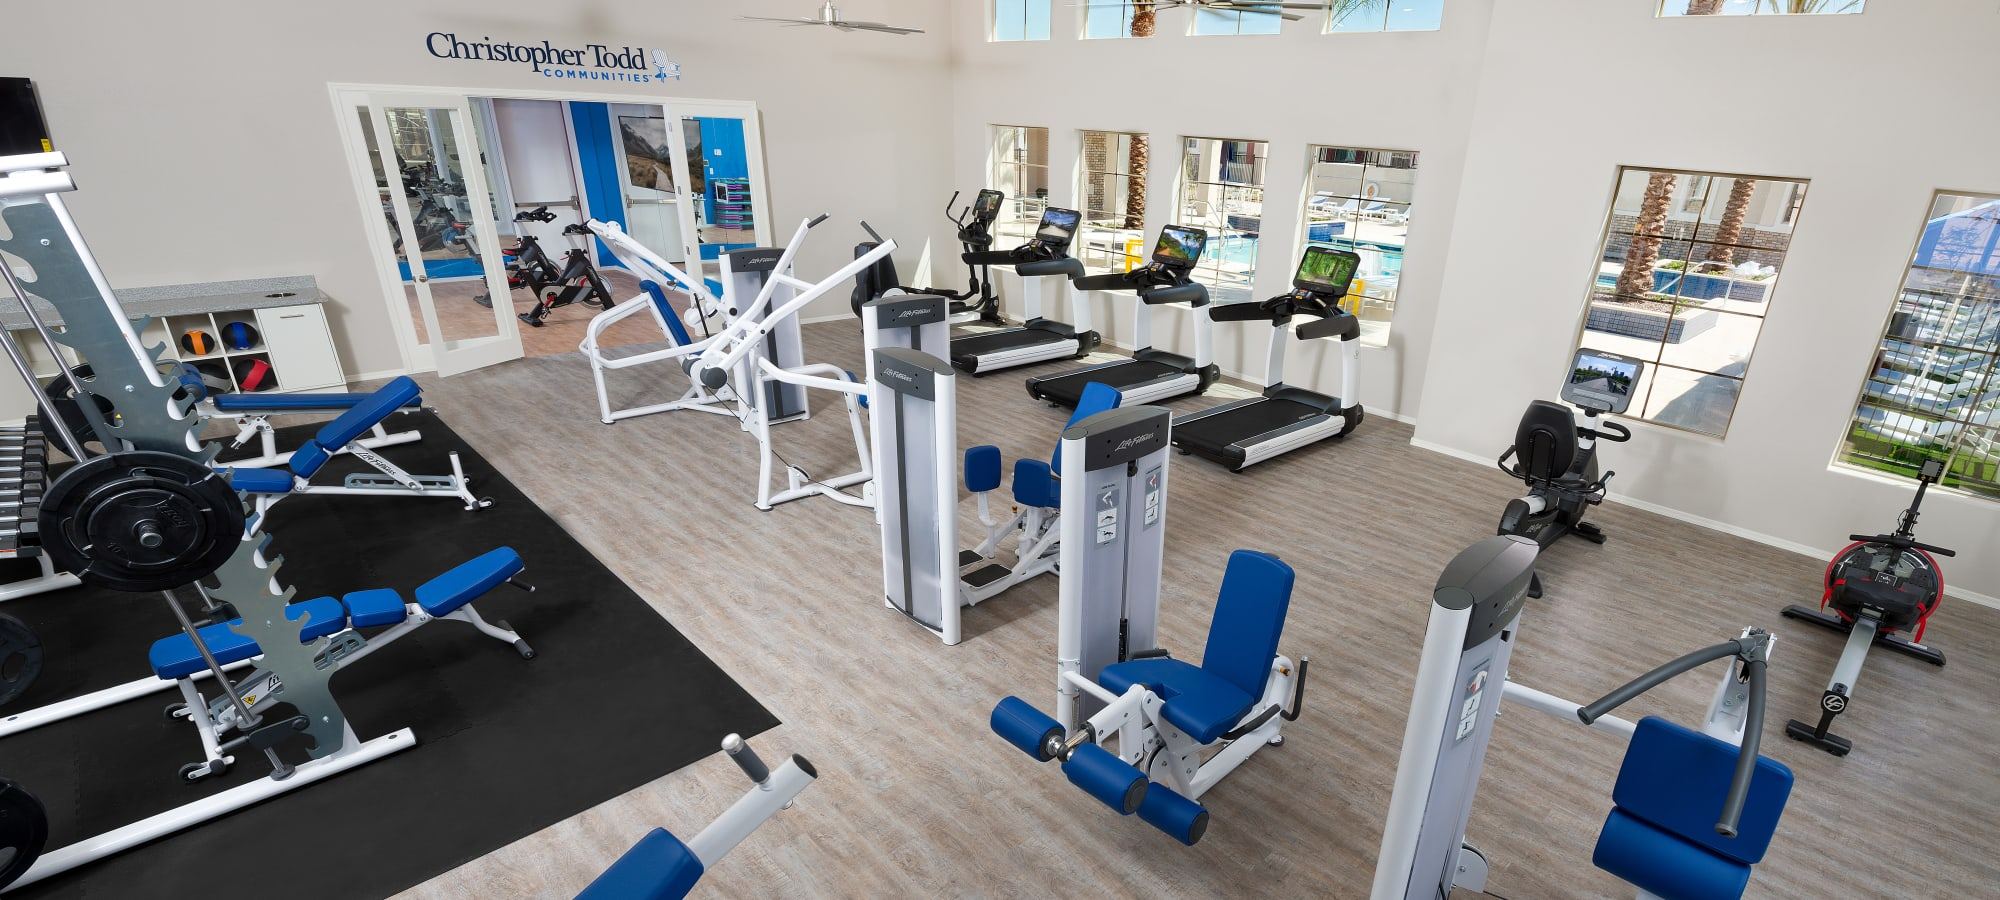 Fitness center and yoga studio at Christopher Todd Communities At Estrella Commons in Goodyear, Arizona